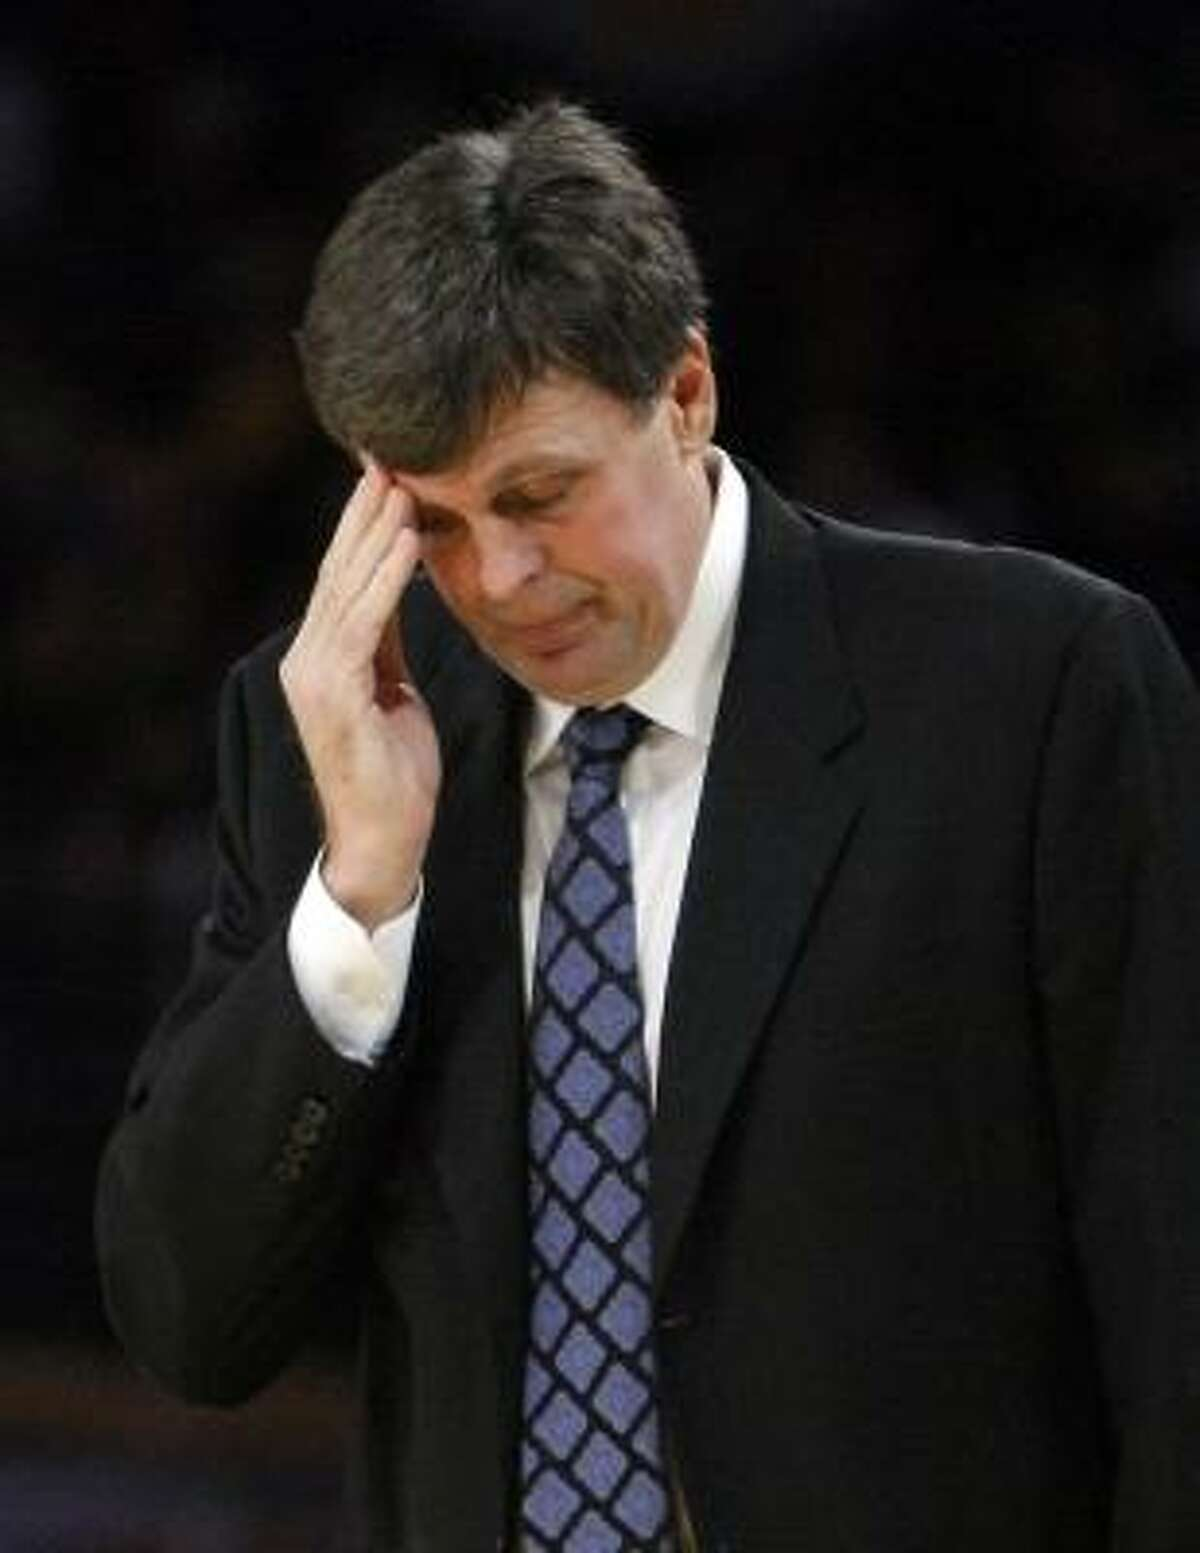 In 2007, McHale was fired from his front office position following three losing seasons for the Timberwolves and the trade of Kevin Garnett to the Boston Celtics.